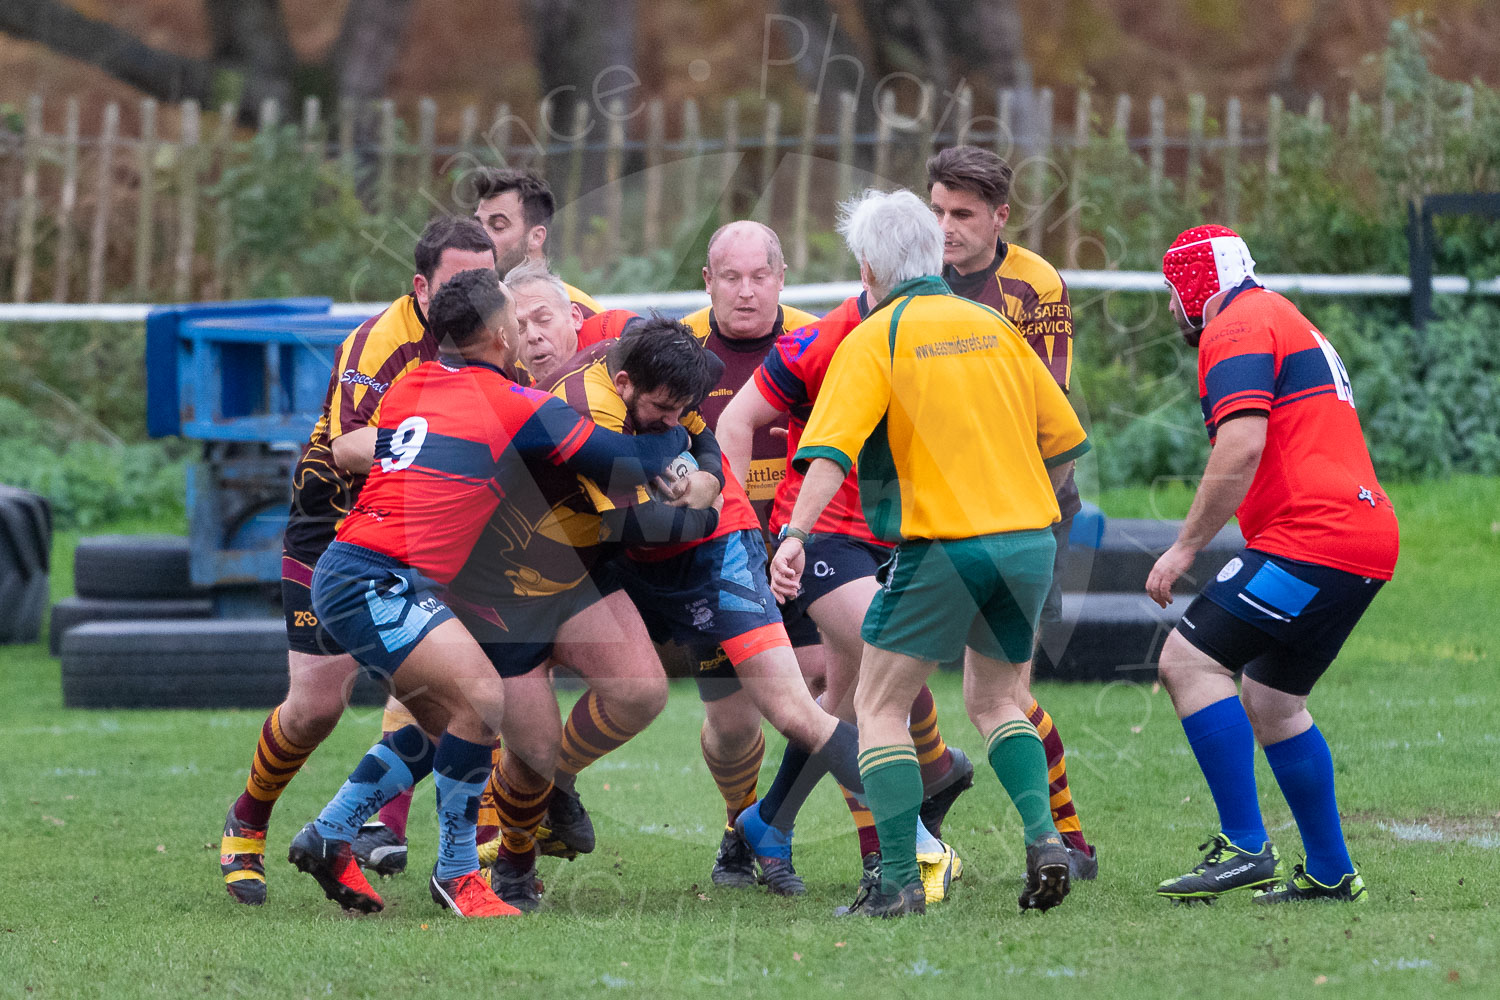 20181027 Amp Extras vs St Neots 2nd XV #2338